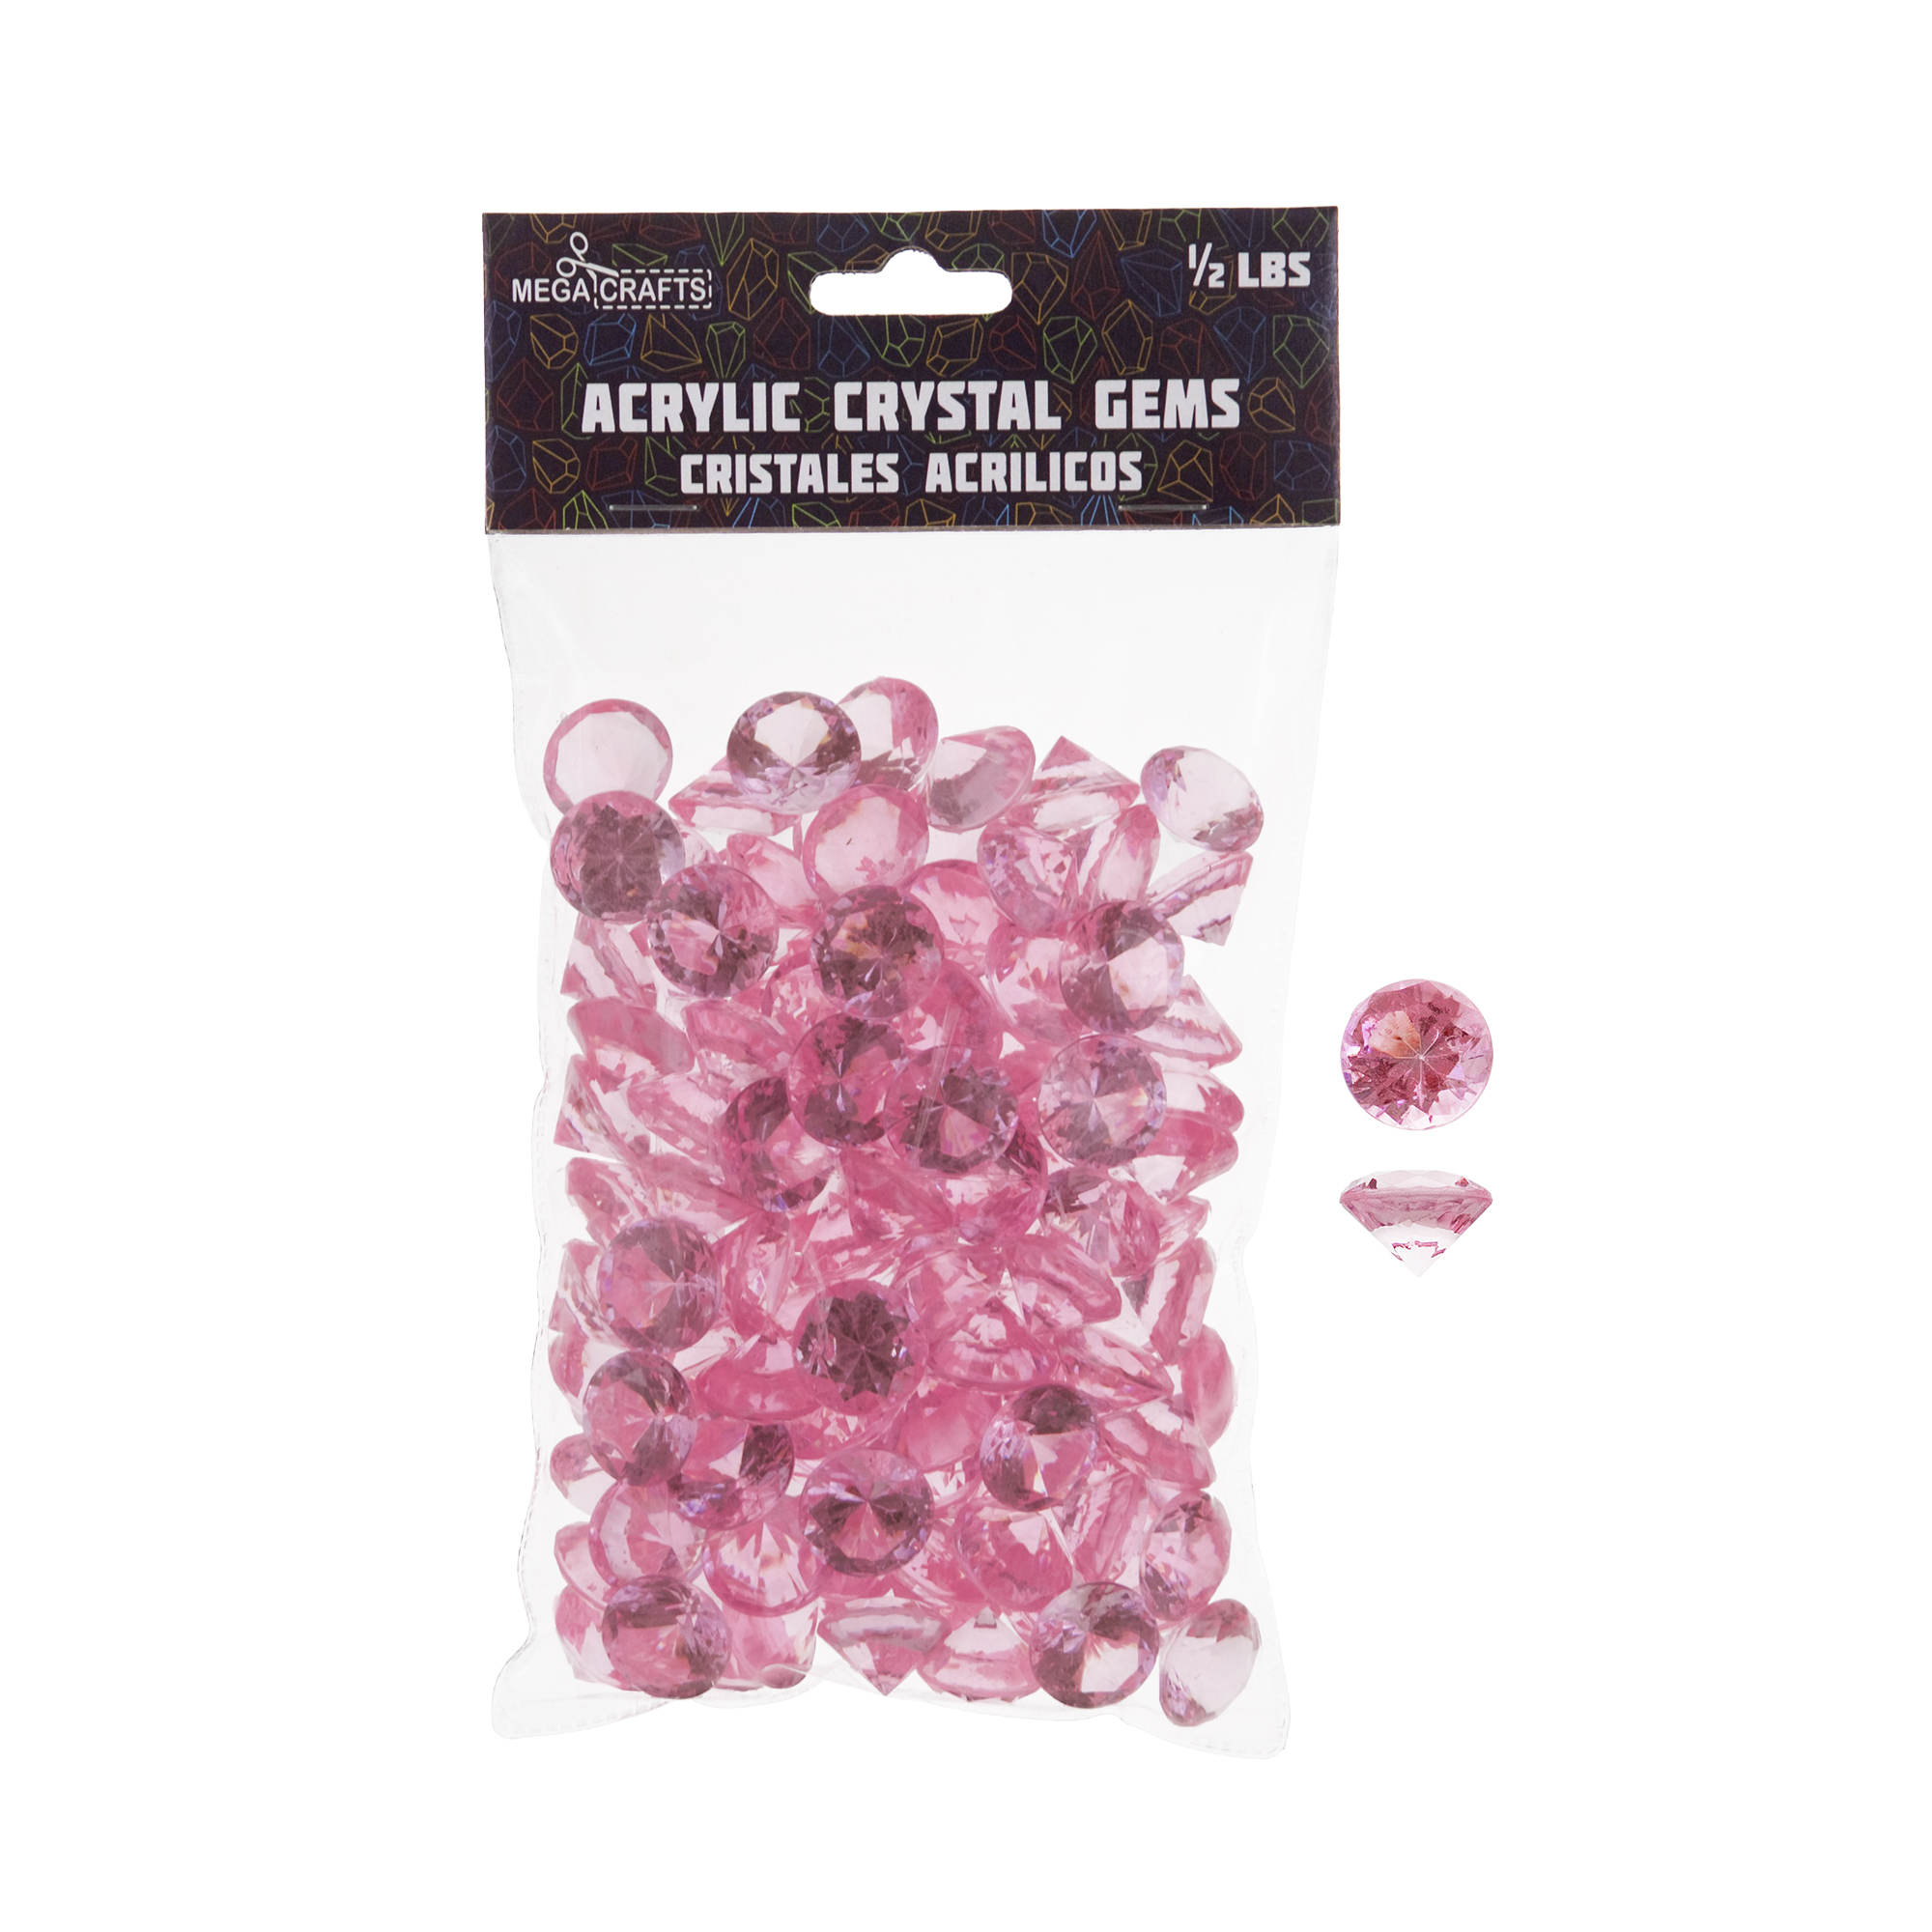 Mega Crafts - 1/2 lb Acrylic Small Diamonds Pink | Plastic Glass Gems For Arts And Crafts, Vase Fillers And Table Scatters, Decoration Stones, Shiny Pebbles